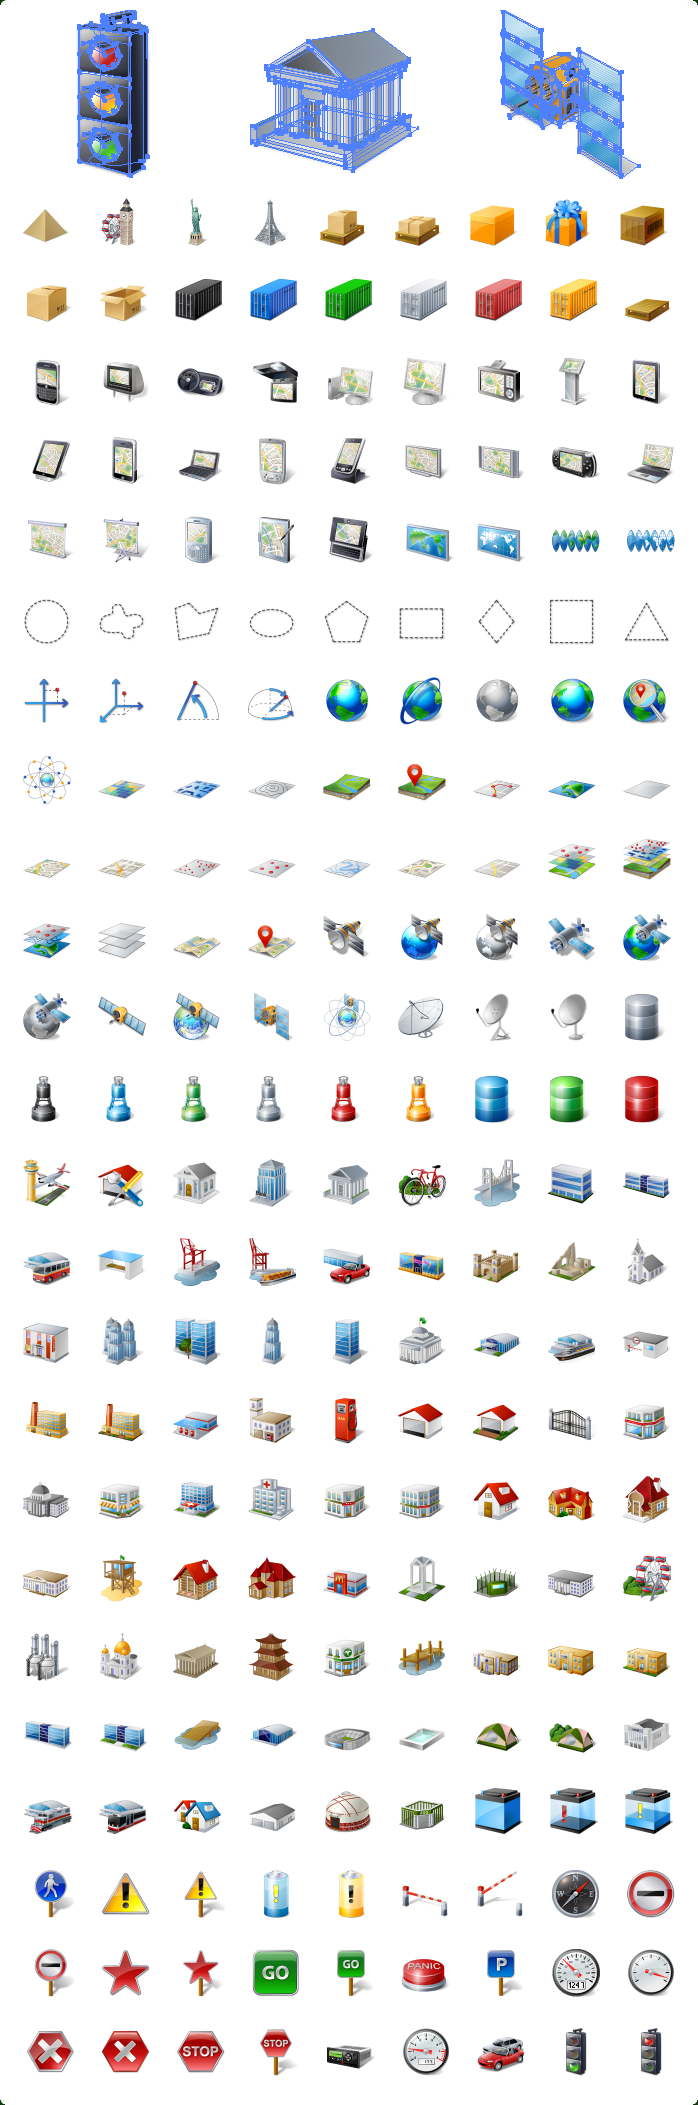 Icons-Land GIS/GPS/MAP Vector Icons Screenshot